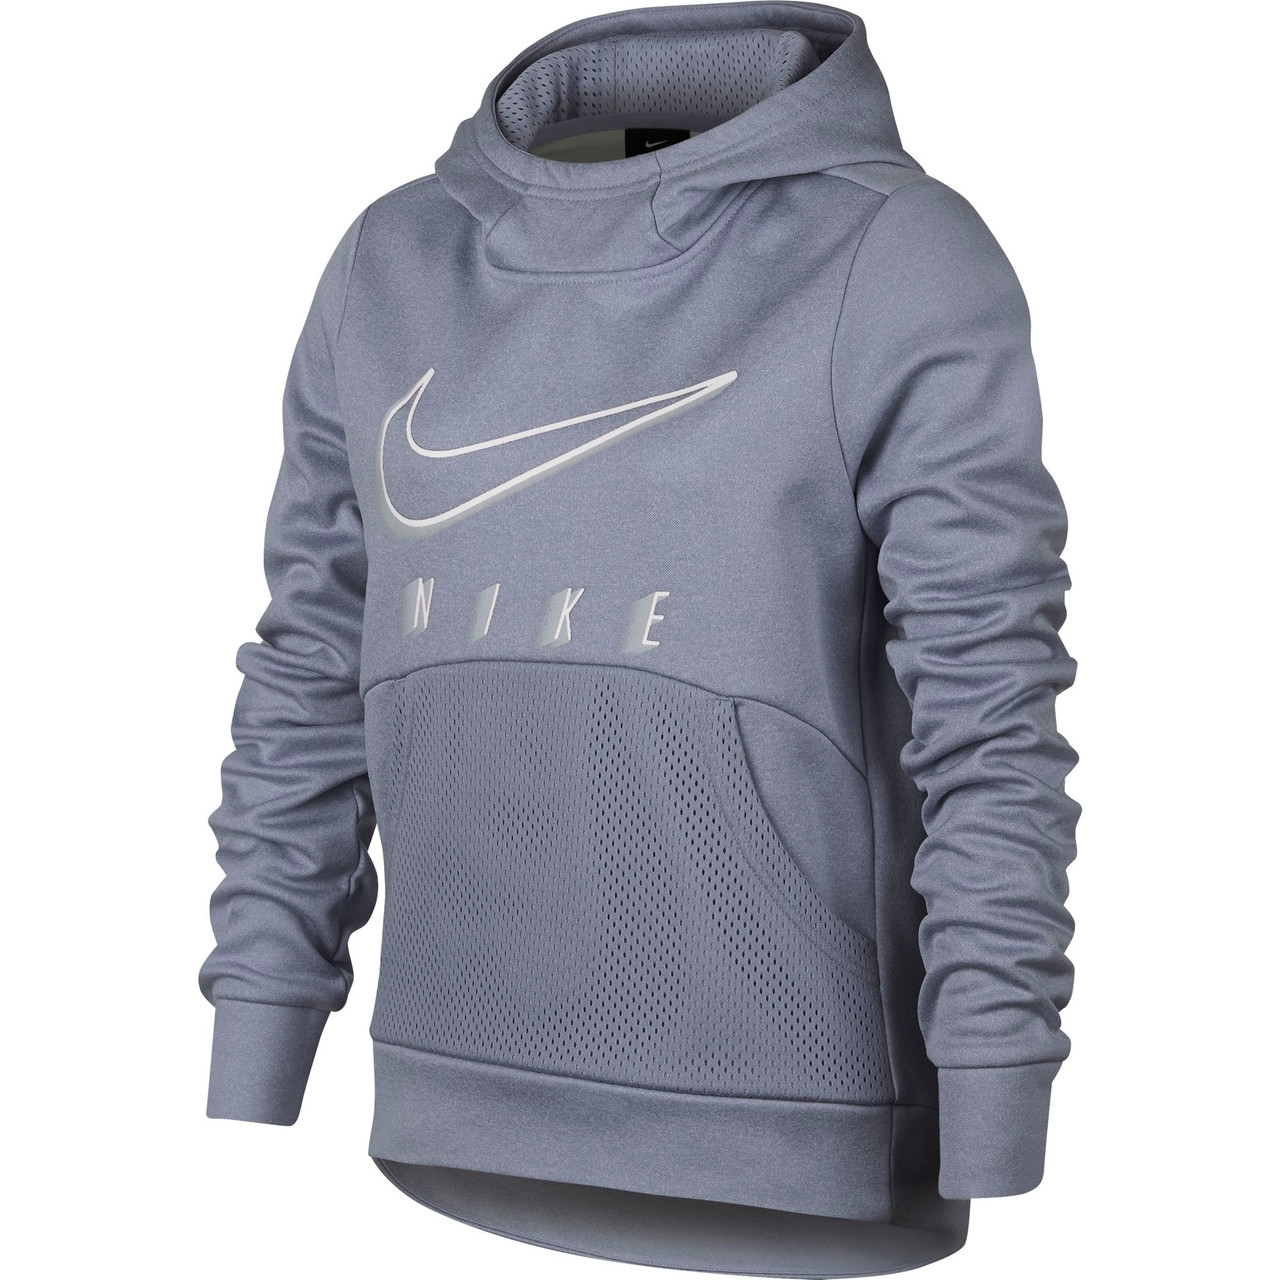 706633720f21e Girl's Nike Therma Training Pullover Hoodie - Sieverts Sporting Goods